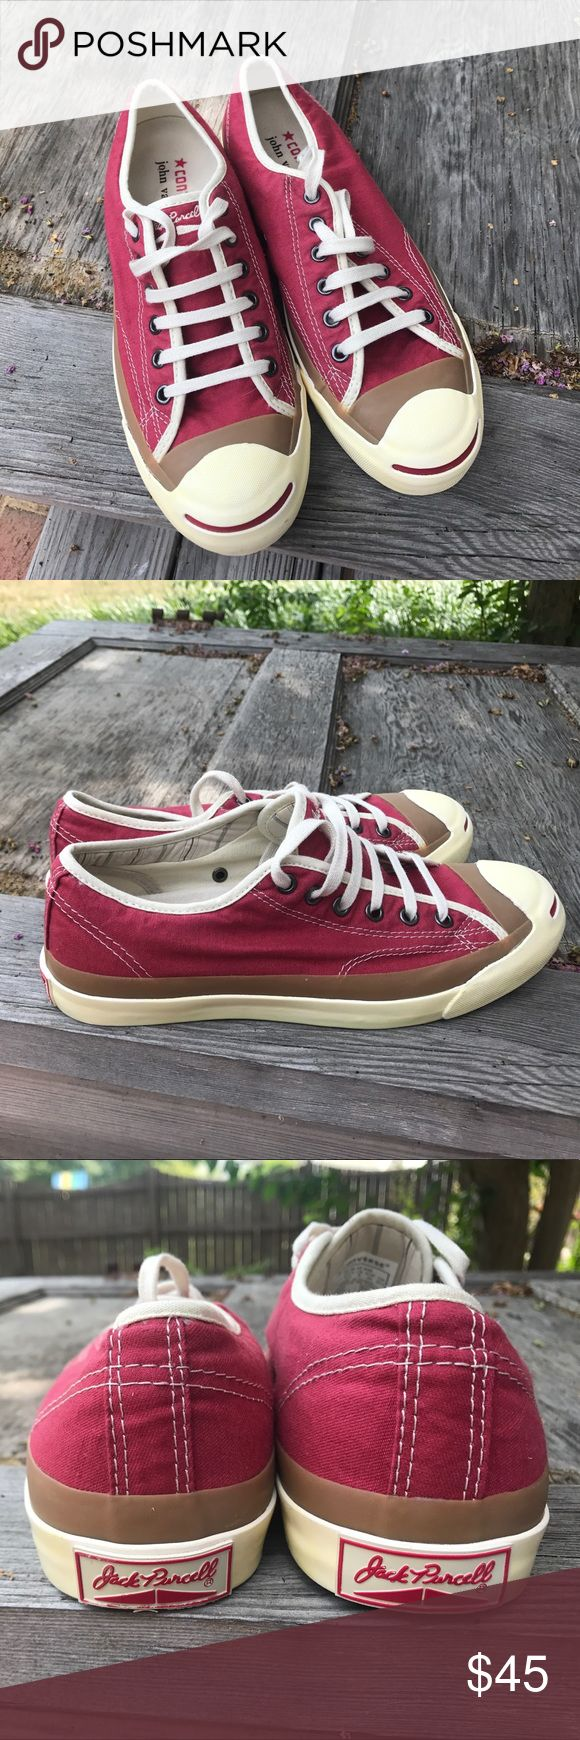 Converse Jack Purcell Chuck Taylor shoes Red 8.5 Converse Jack Purcell Limited Edition John Varvatos shoes Red 8.5 (Men size 7). Pre-owned Converse Shoes Sneakers